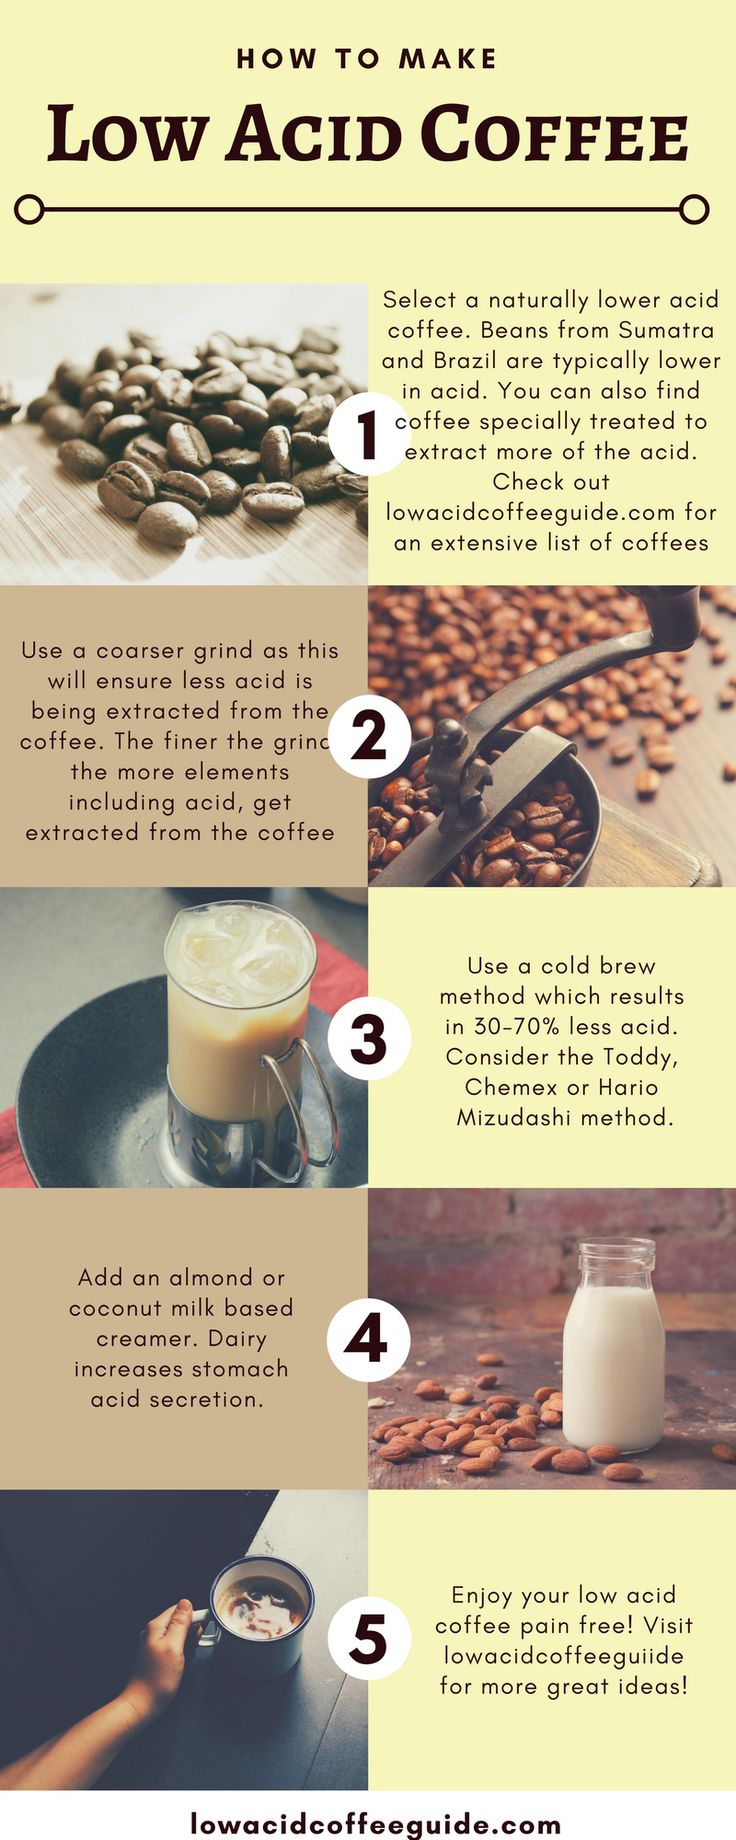 How To Make Low Acid Coffee – Low Acid Coffee Guide